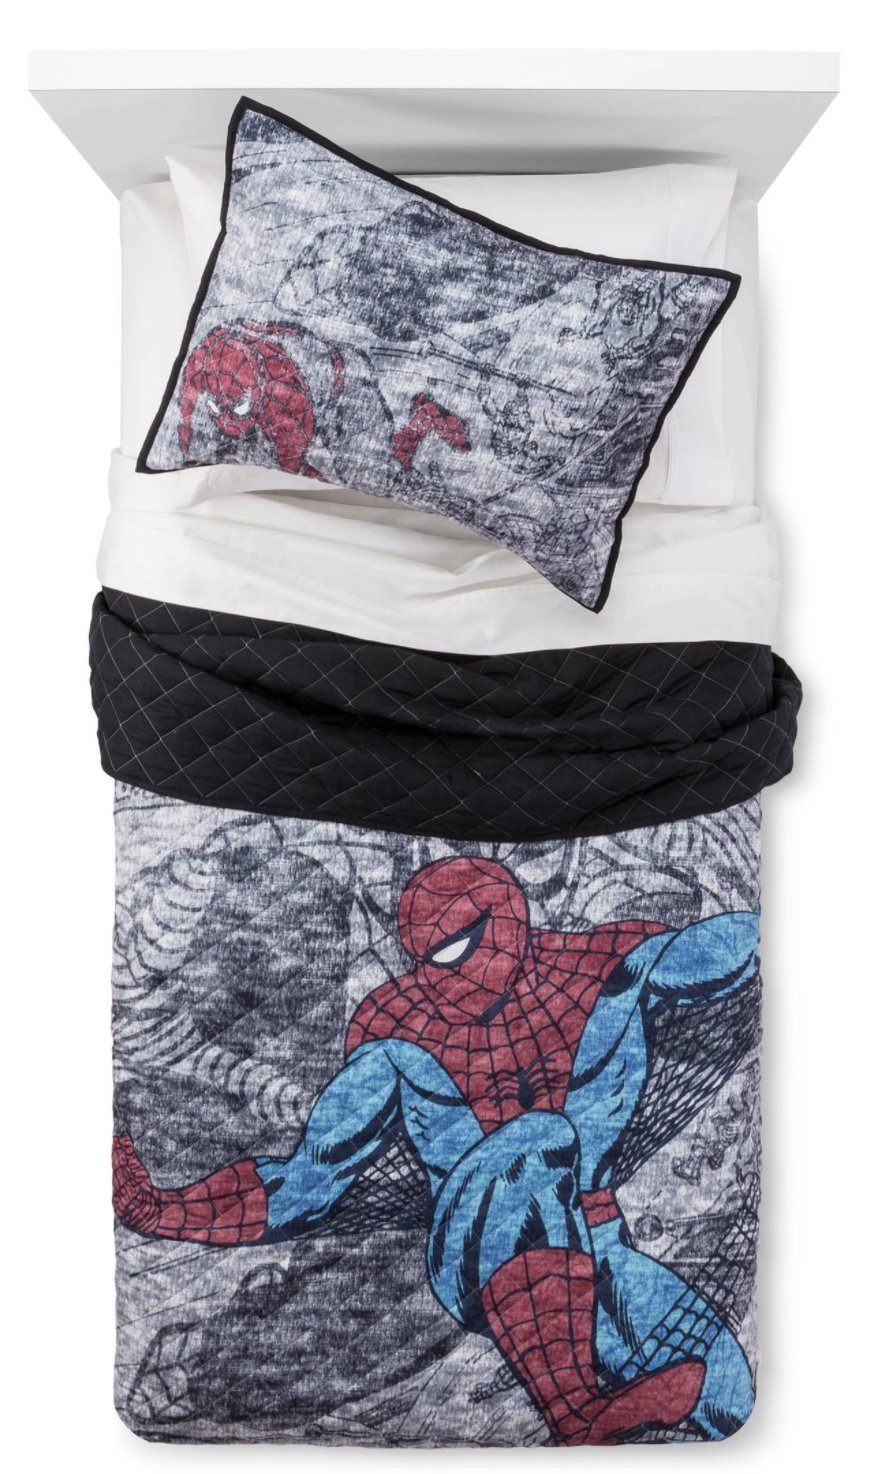 7-pc Marvel Spider-Man Hero QUEEN Quilt & Sheet Set (set includes: Quilt, 2 shams, 4-pc Queen Spidey Sense Sheet Set)